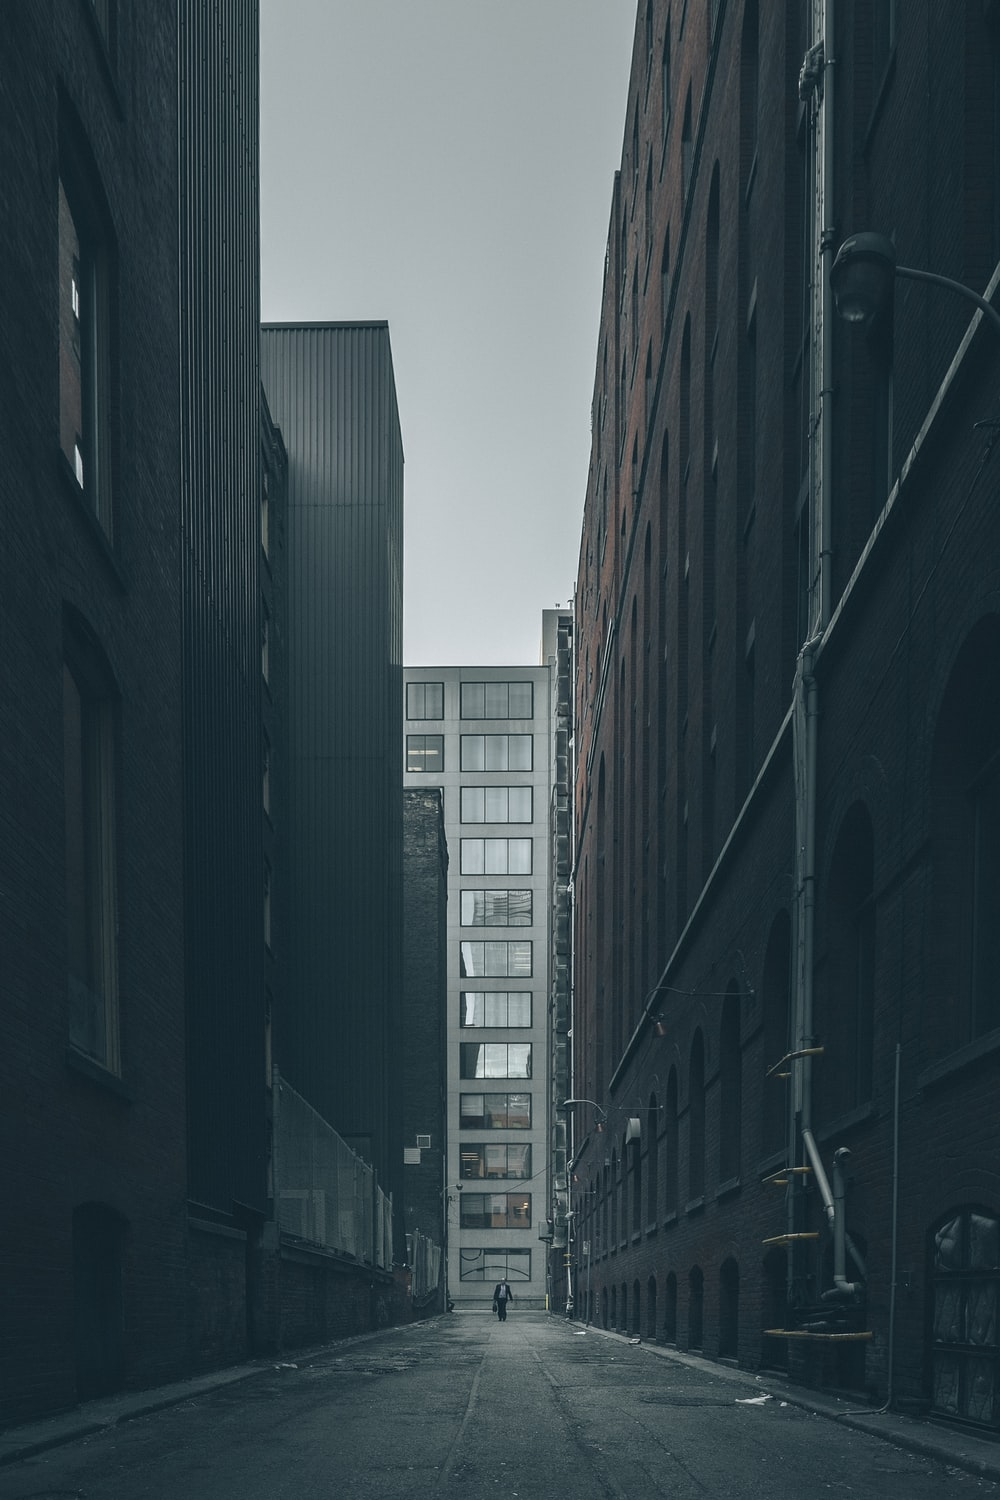 man walking in the middle of city buildings under gray clouds